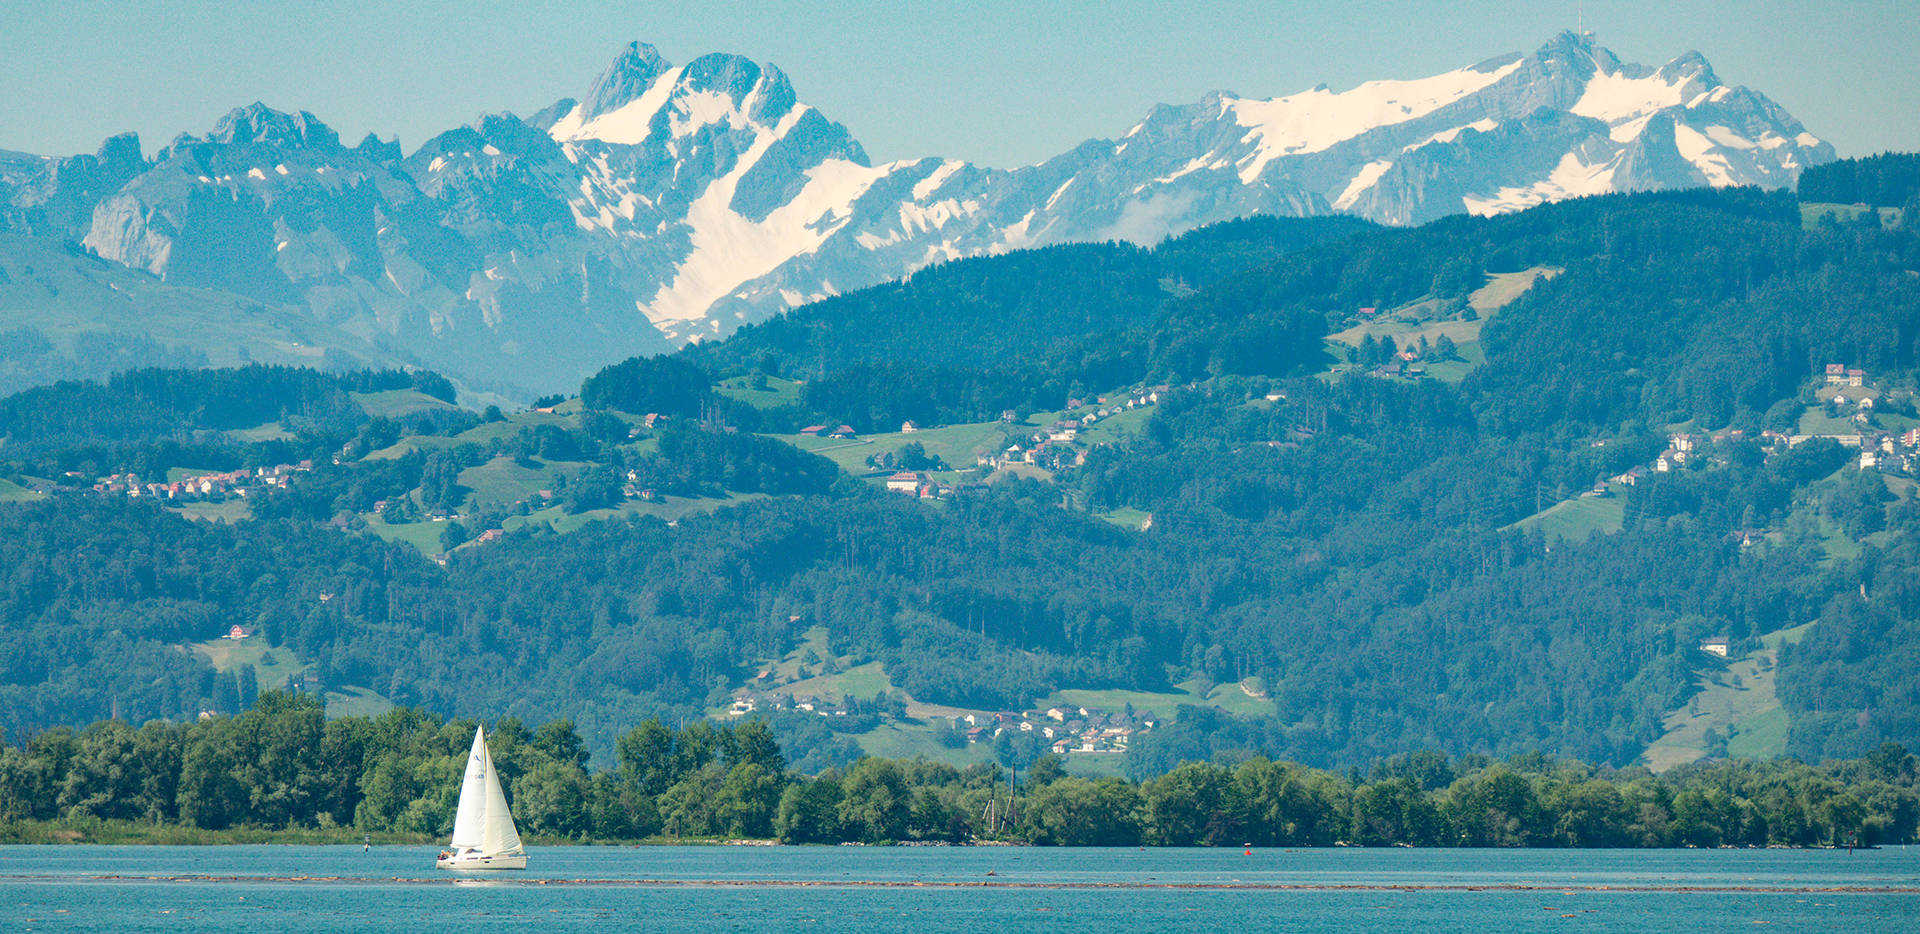 Lake Constance Bodensee Sailboat And Swiss Alps